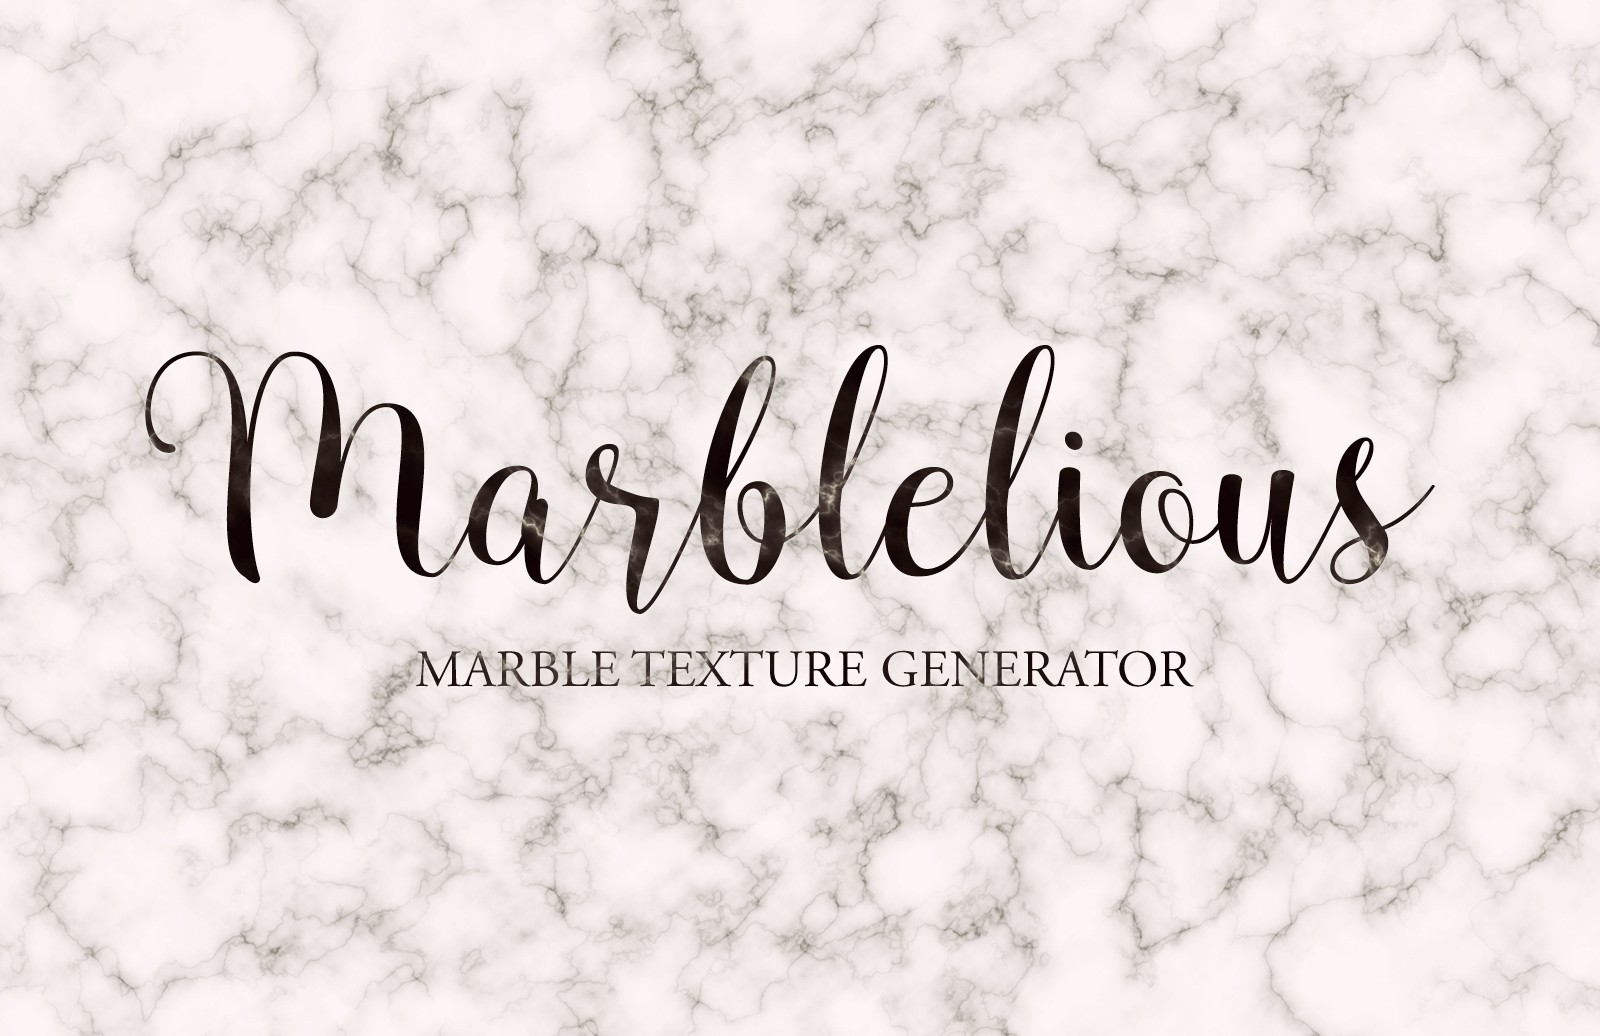 Marblelious Marble Texture Generator